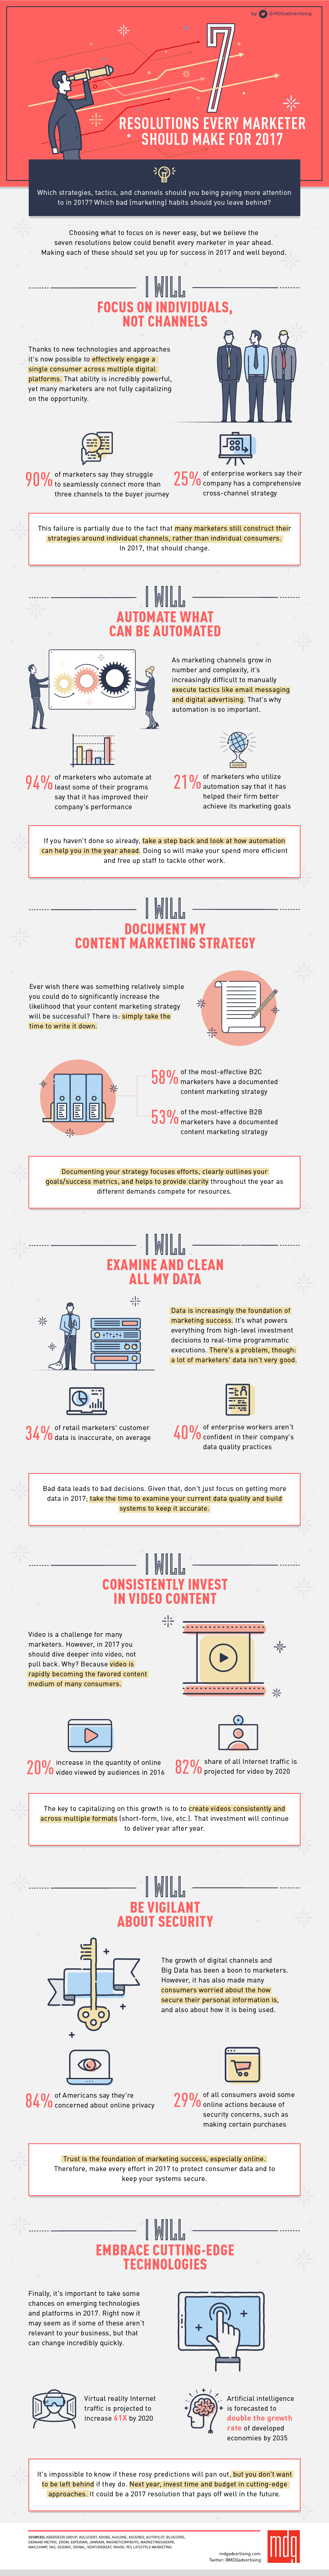 digital marketing resolutions infographic